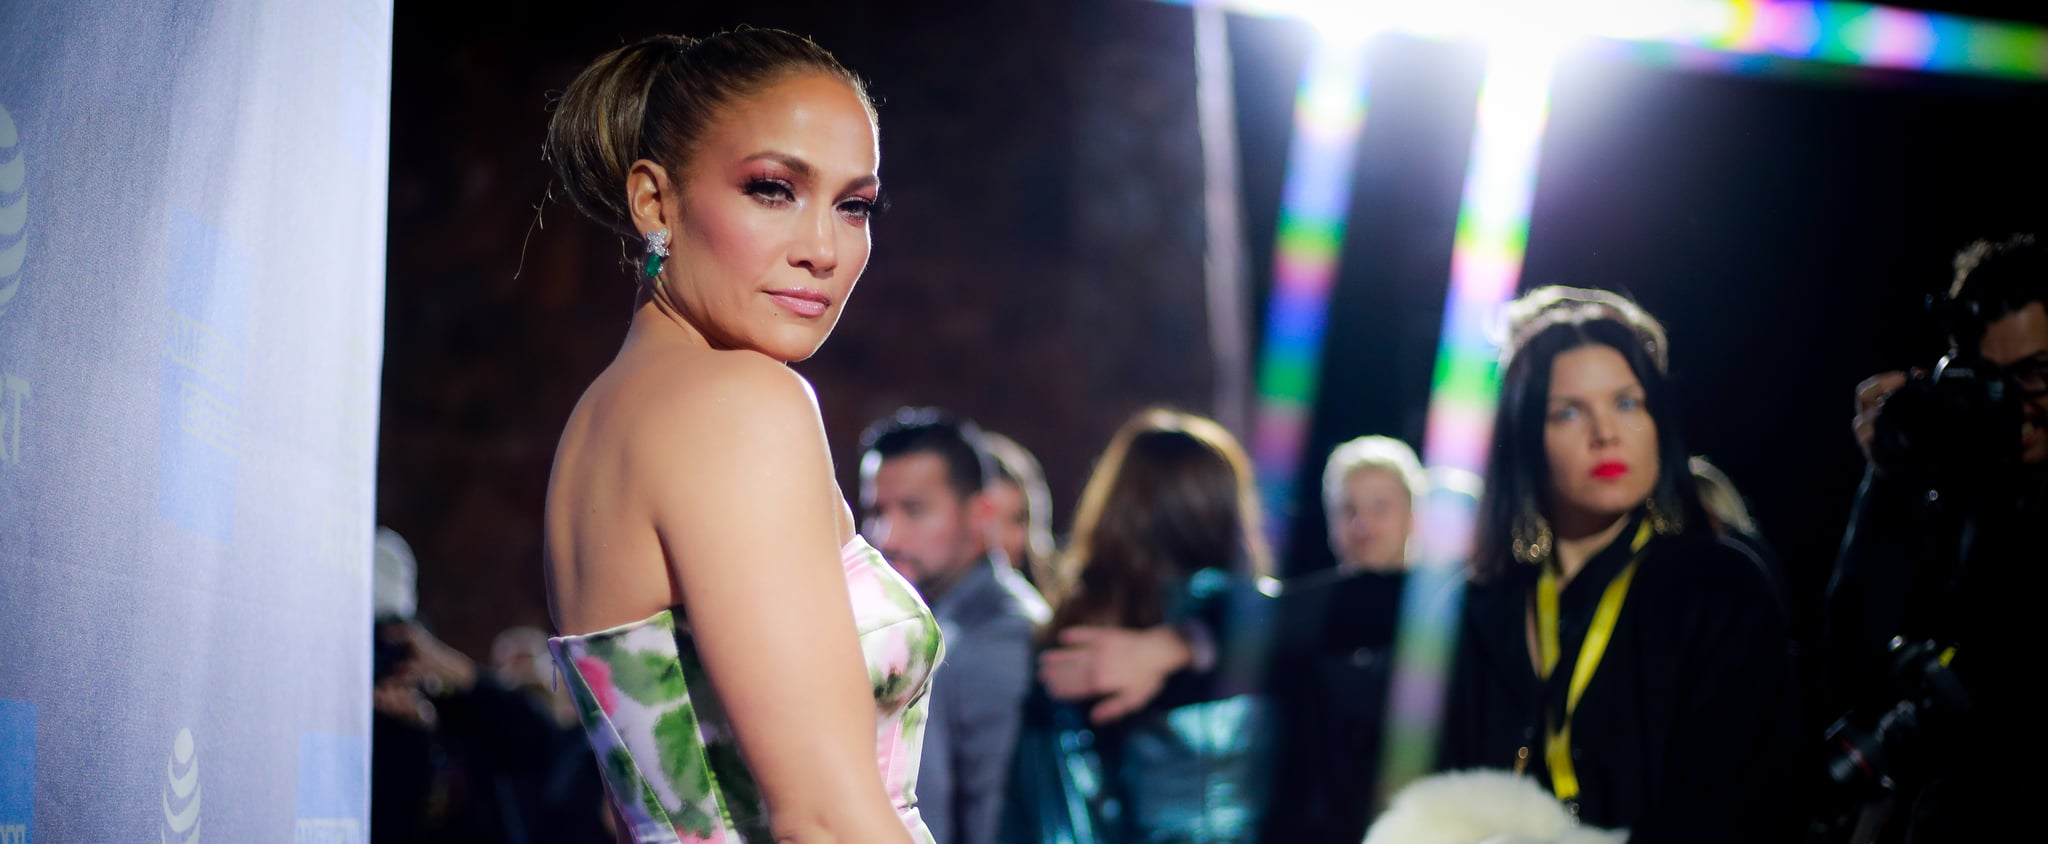 J Lo Wasn't Snubbed at the Oscars Nominations